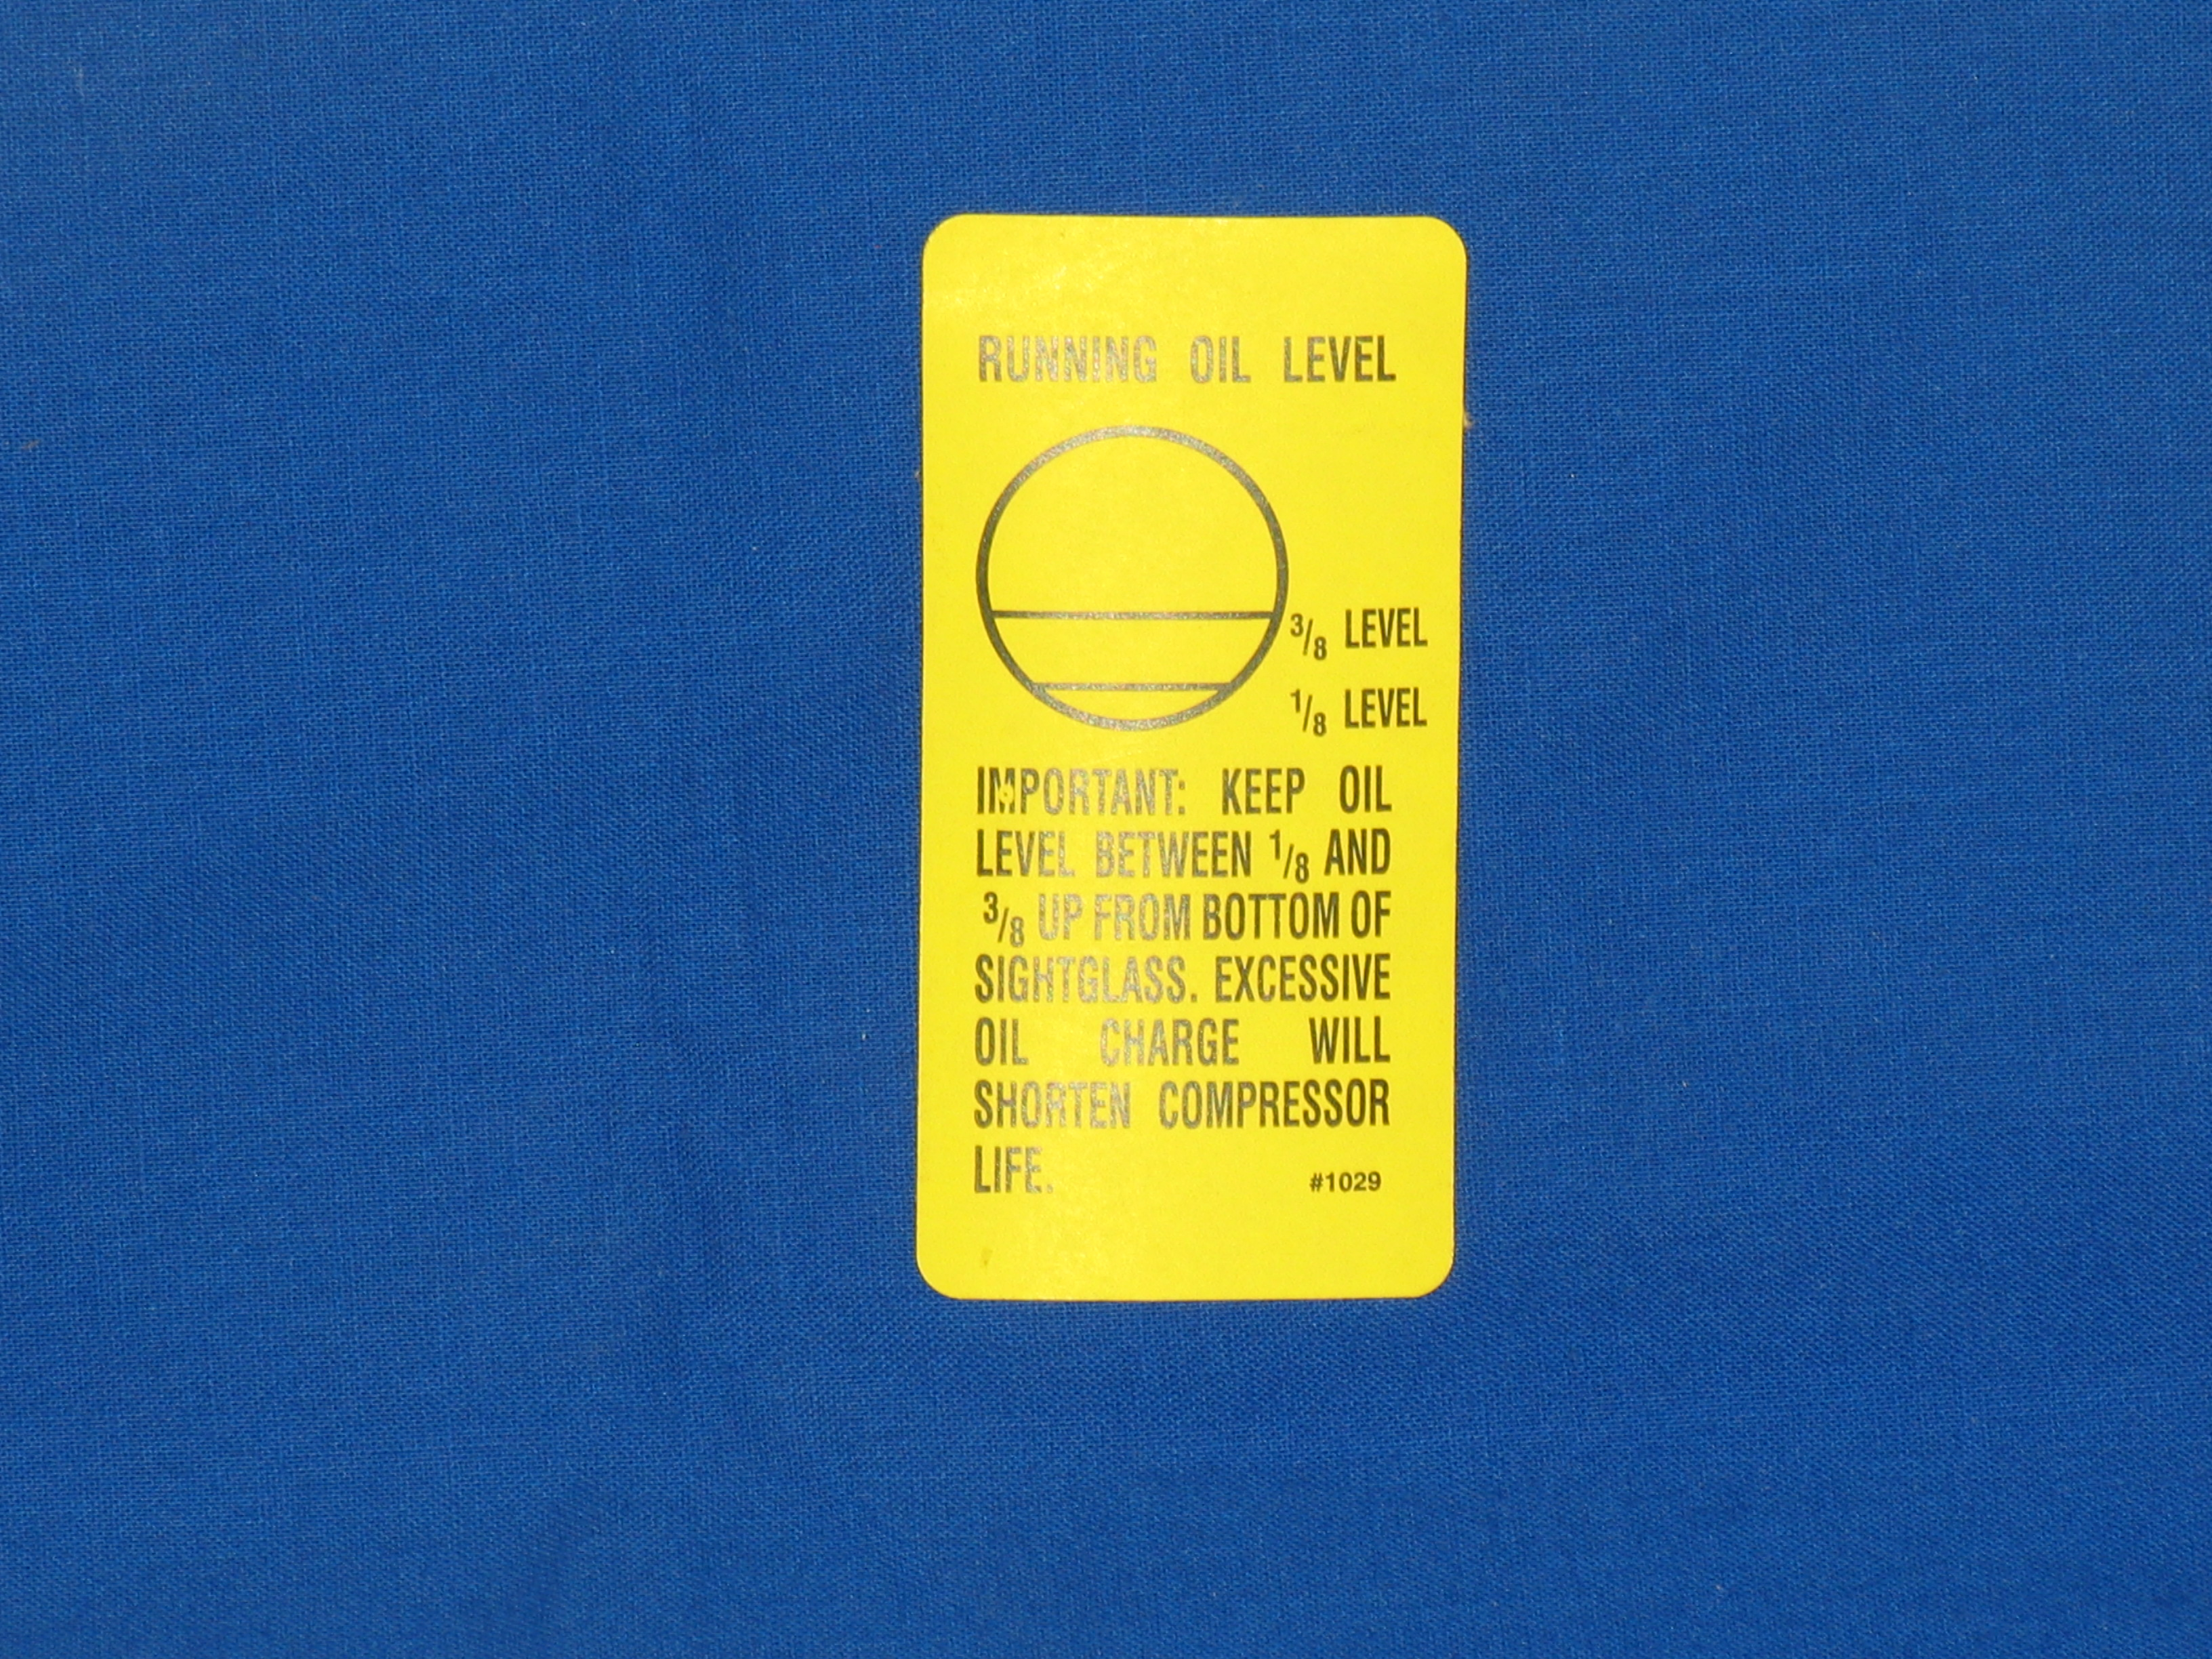 LBL-1029 Label Oil Level